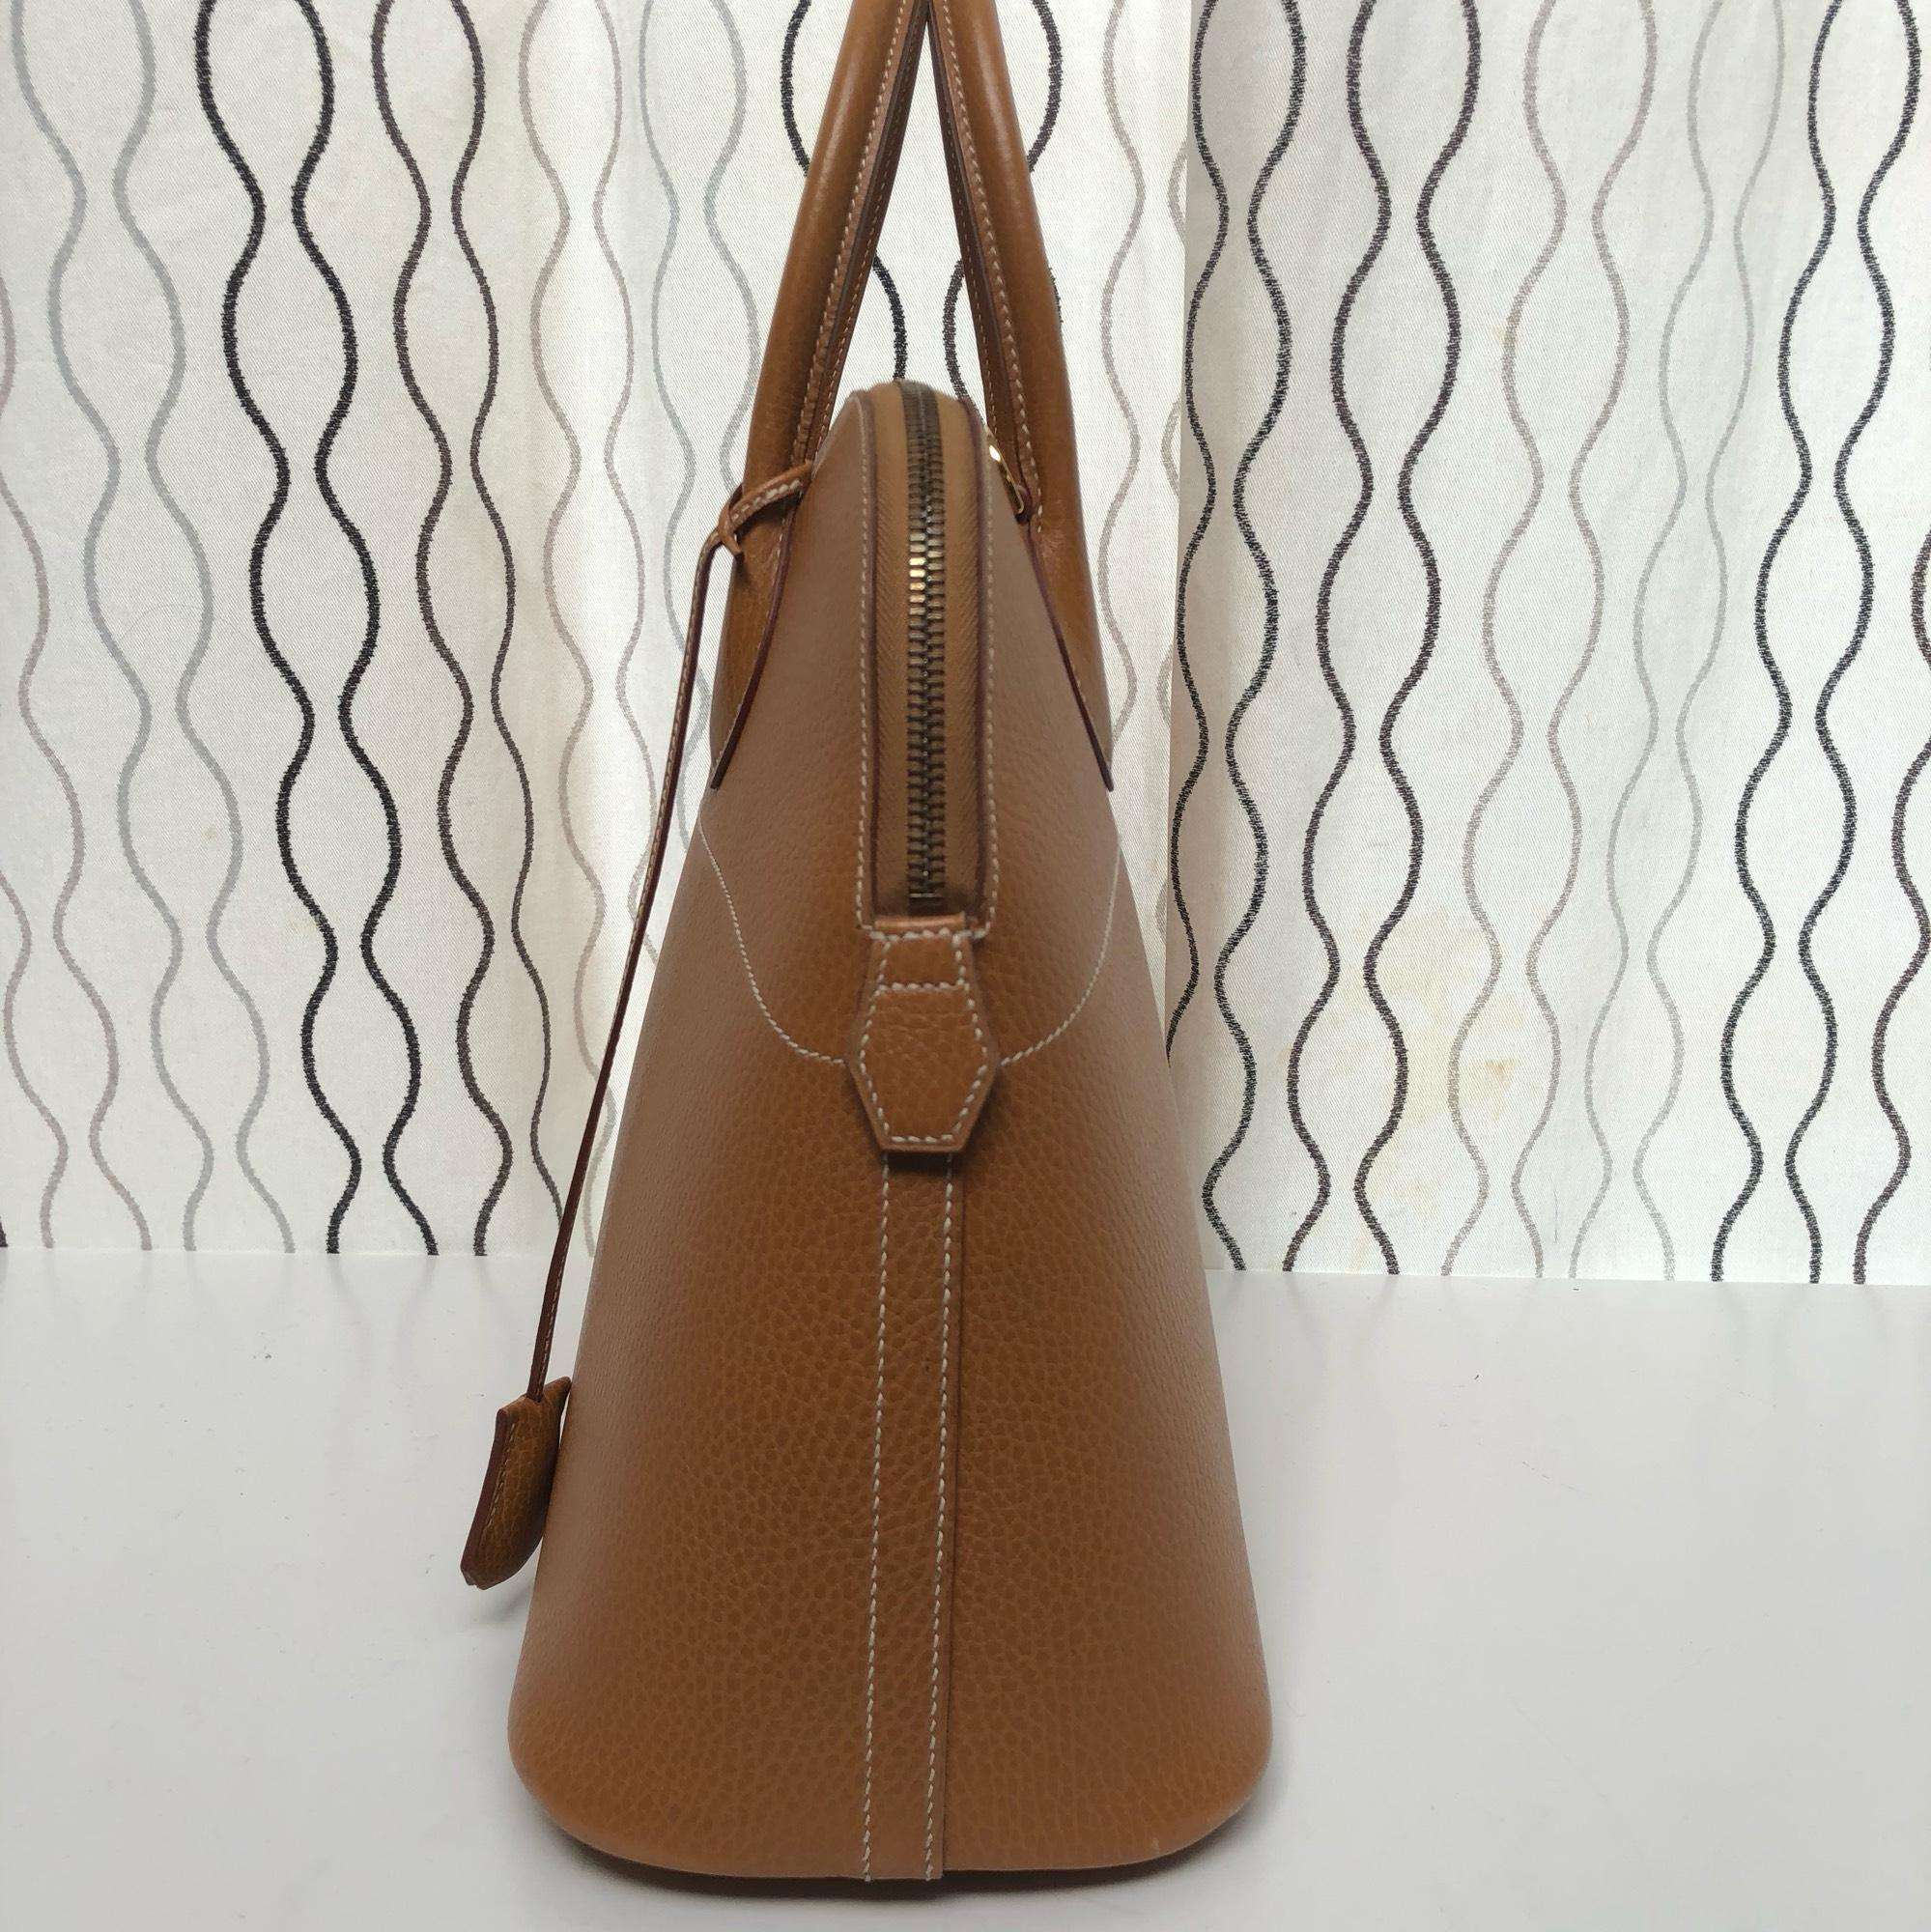 e61549f4040 ... germany 123456789101112 hermès bolide 35 natural sable ardennes leather  tote tradesy f92d0 bb902